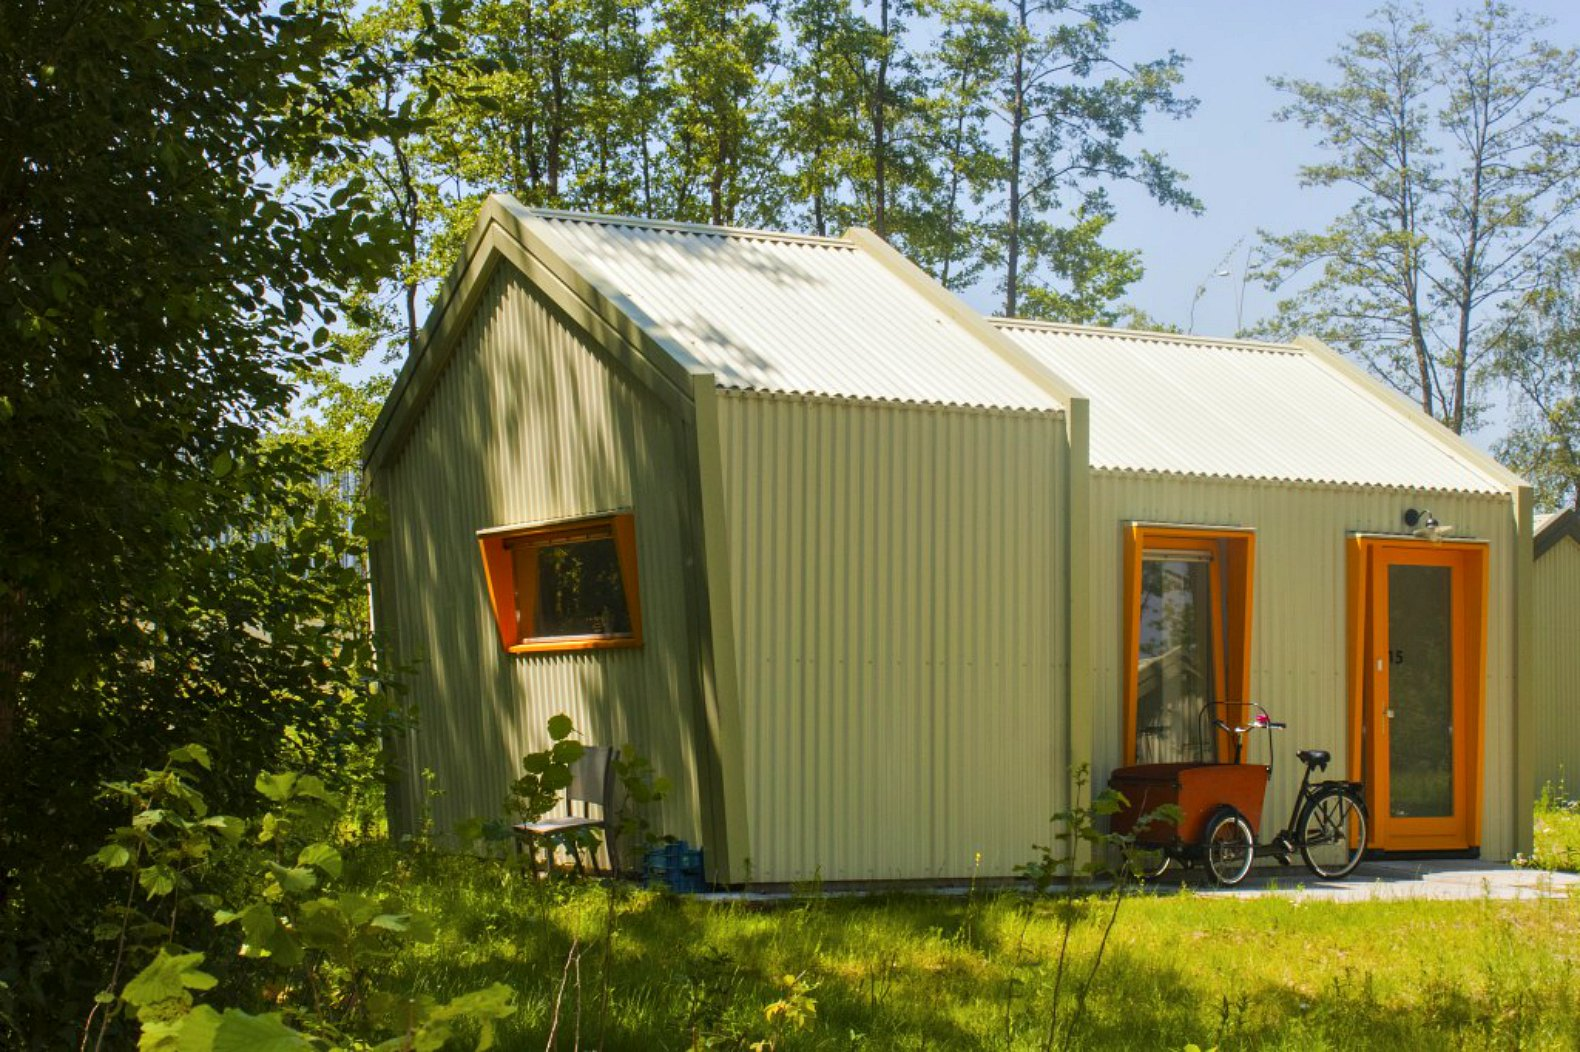 Tiny Home Design: Studio Elmo Vermijs Designs Tiny House Village For